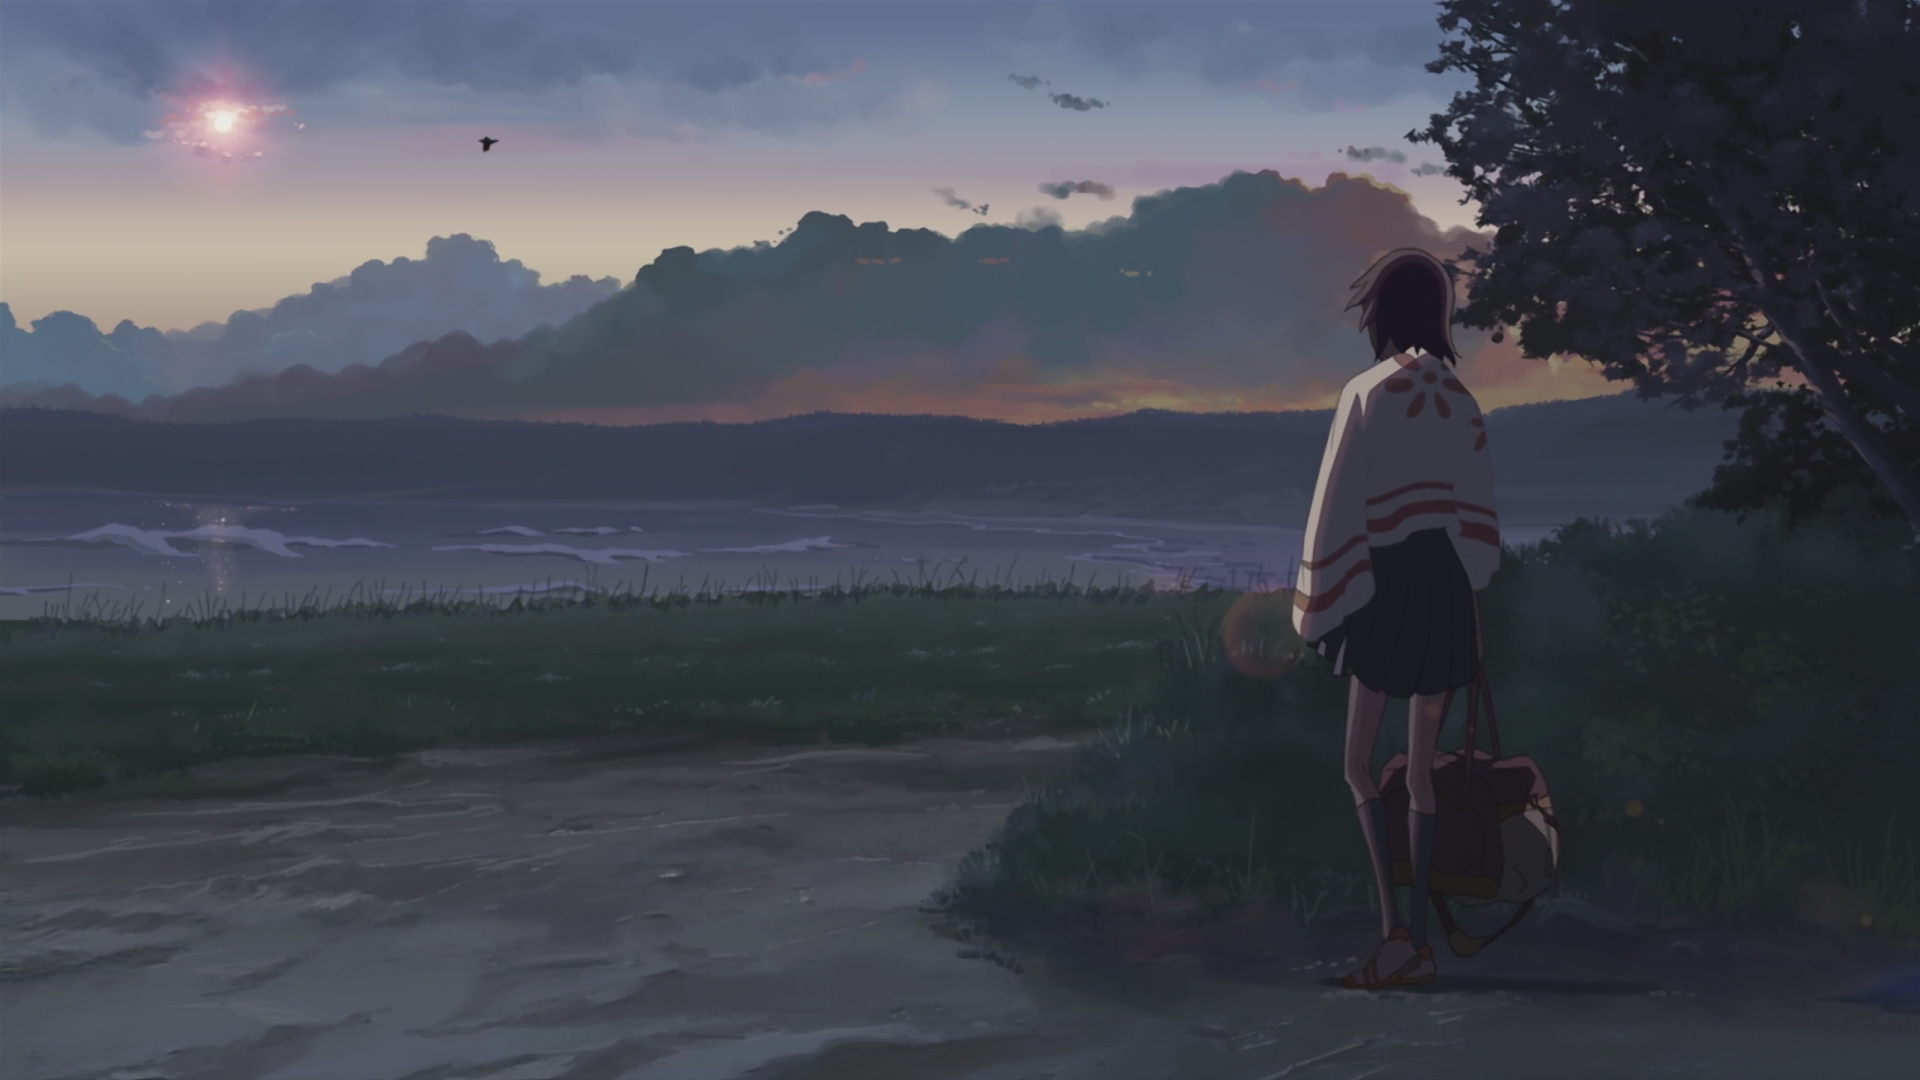 Makoto Shinkai Scenic 5 Centimeters Per Second Artwork Free